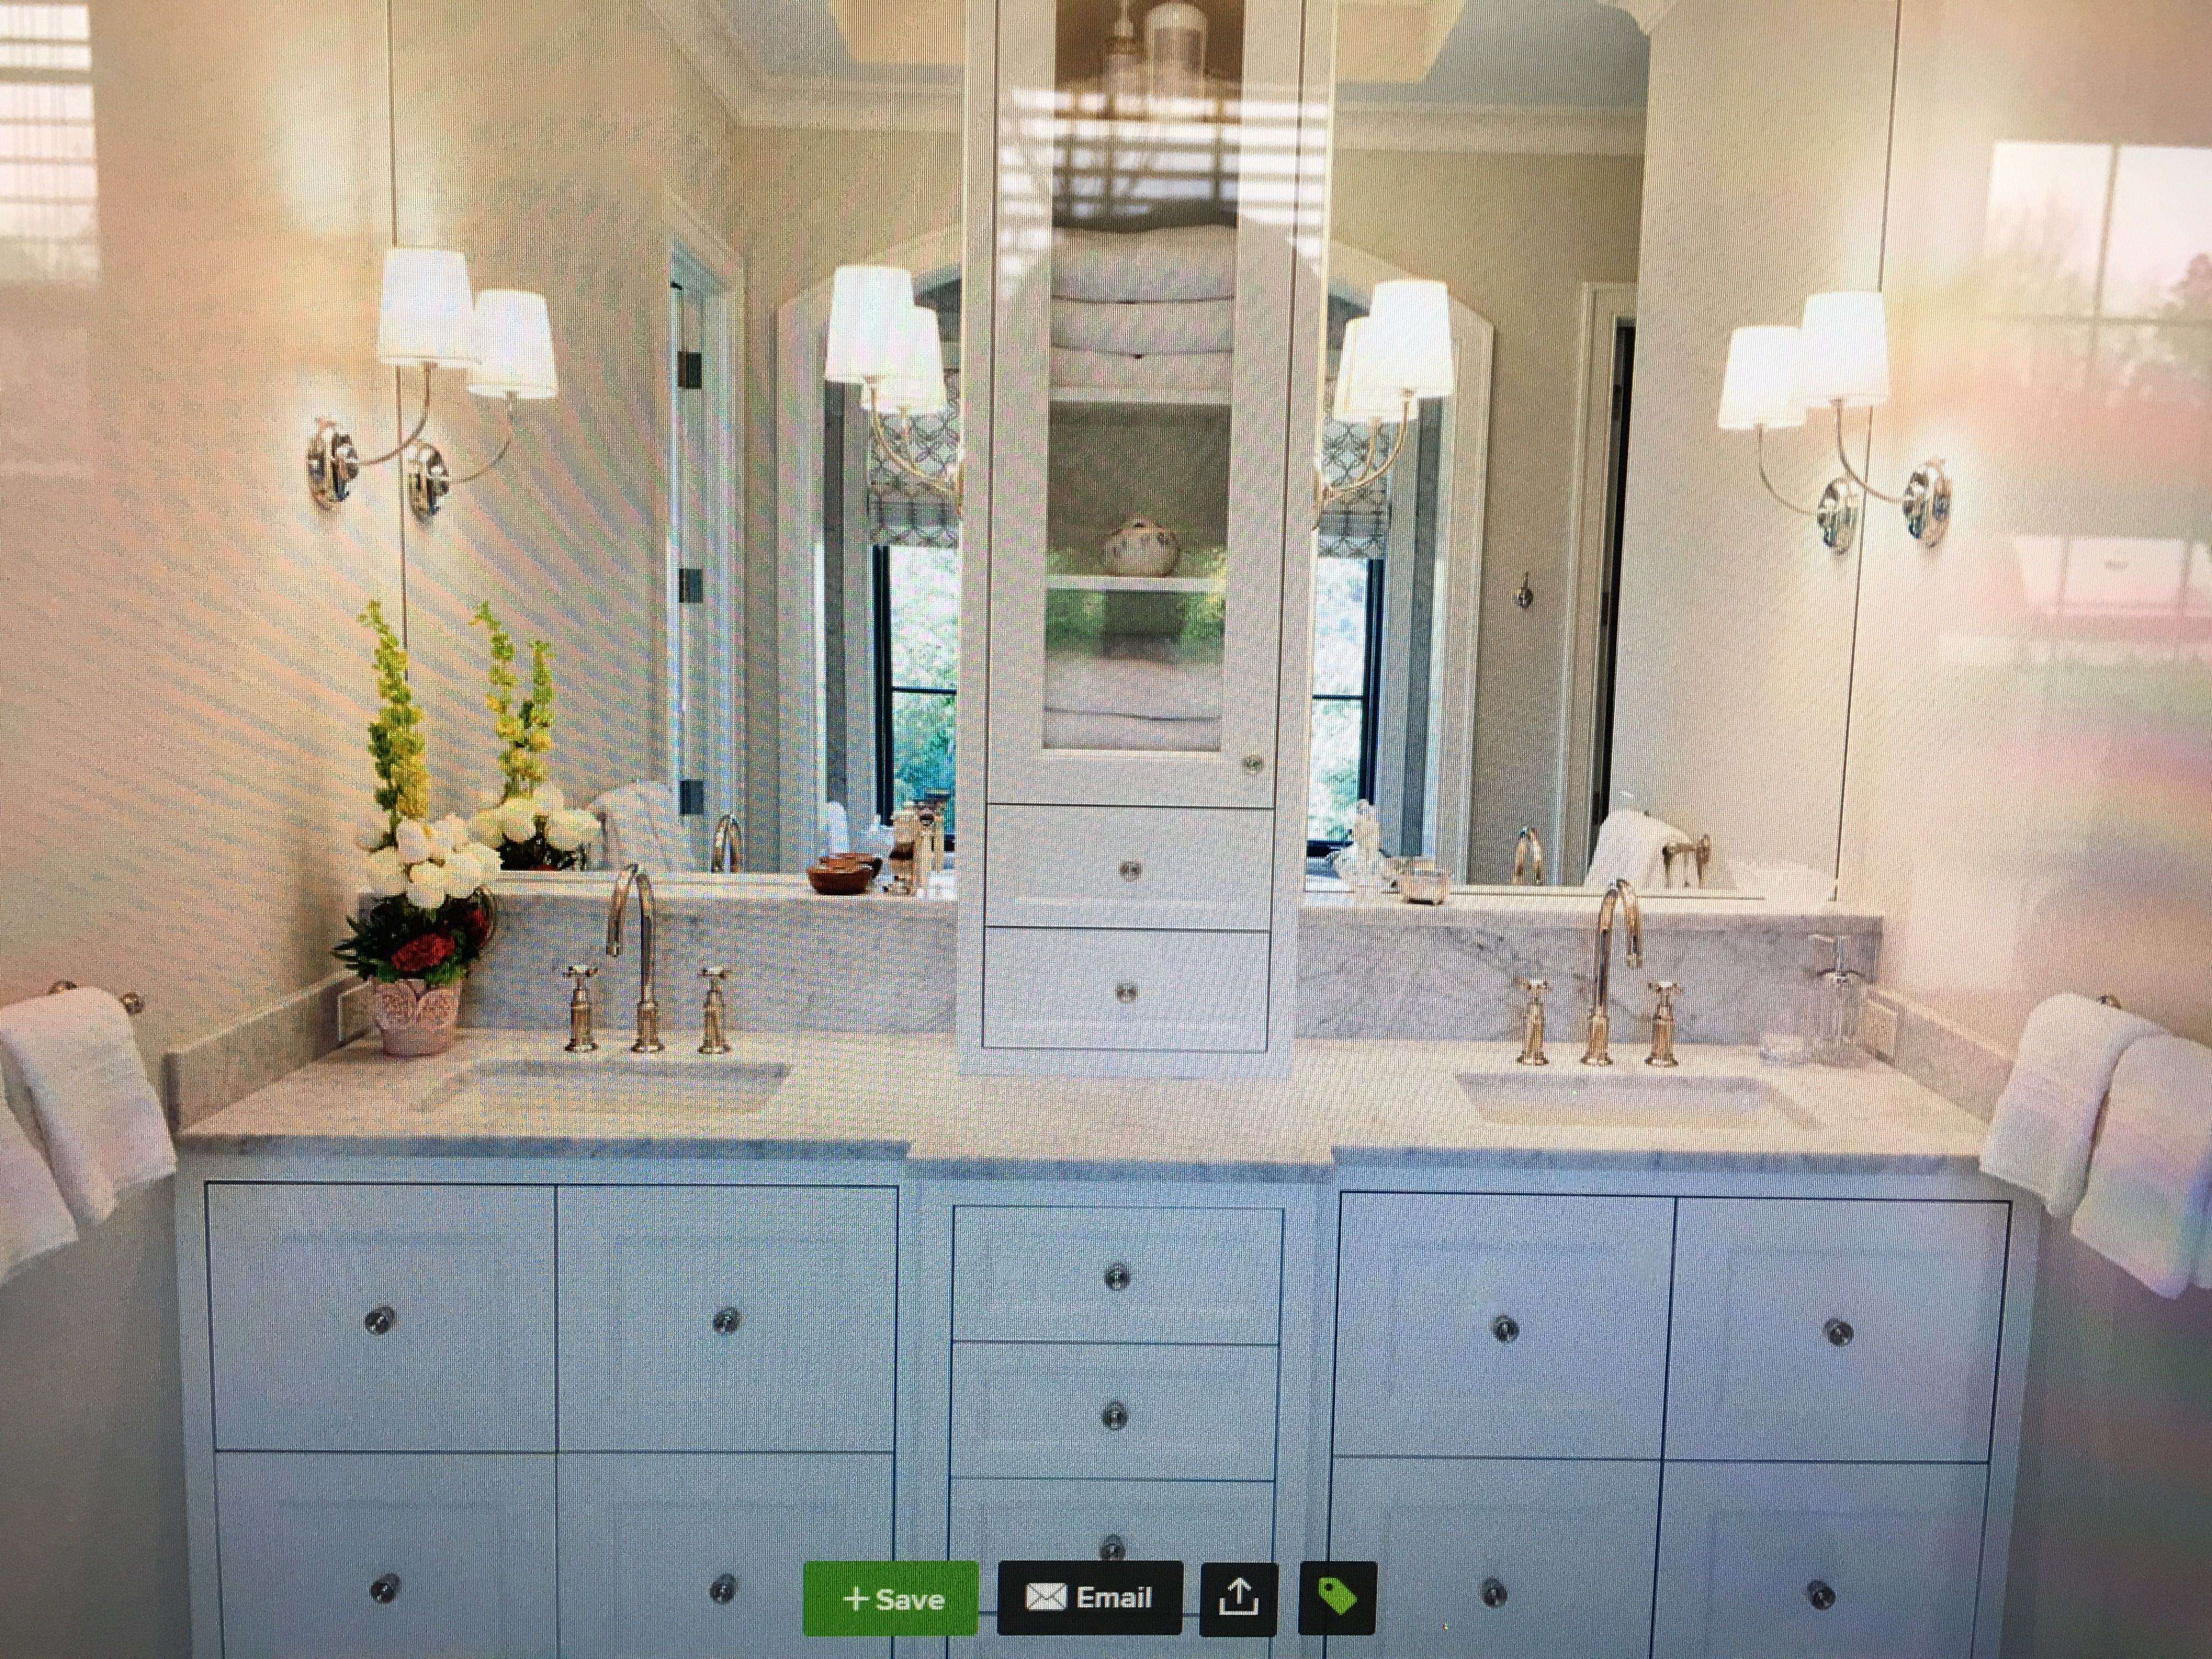 Sconce Placement With Full Mirrors Shared Bath Pinterest - Bathroom remodel grand rapids